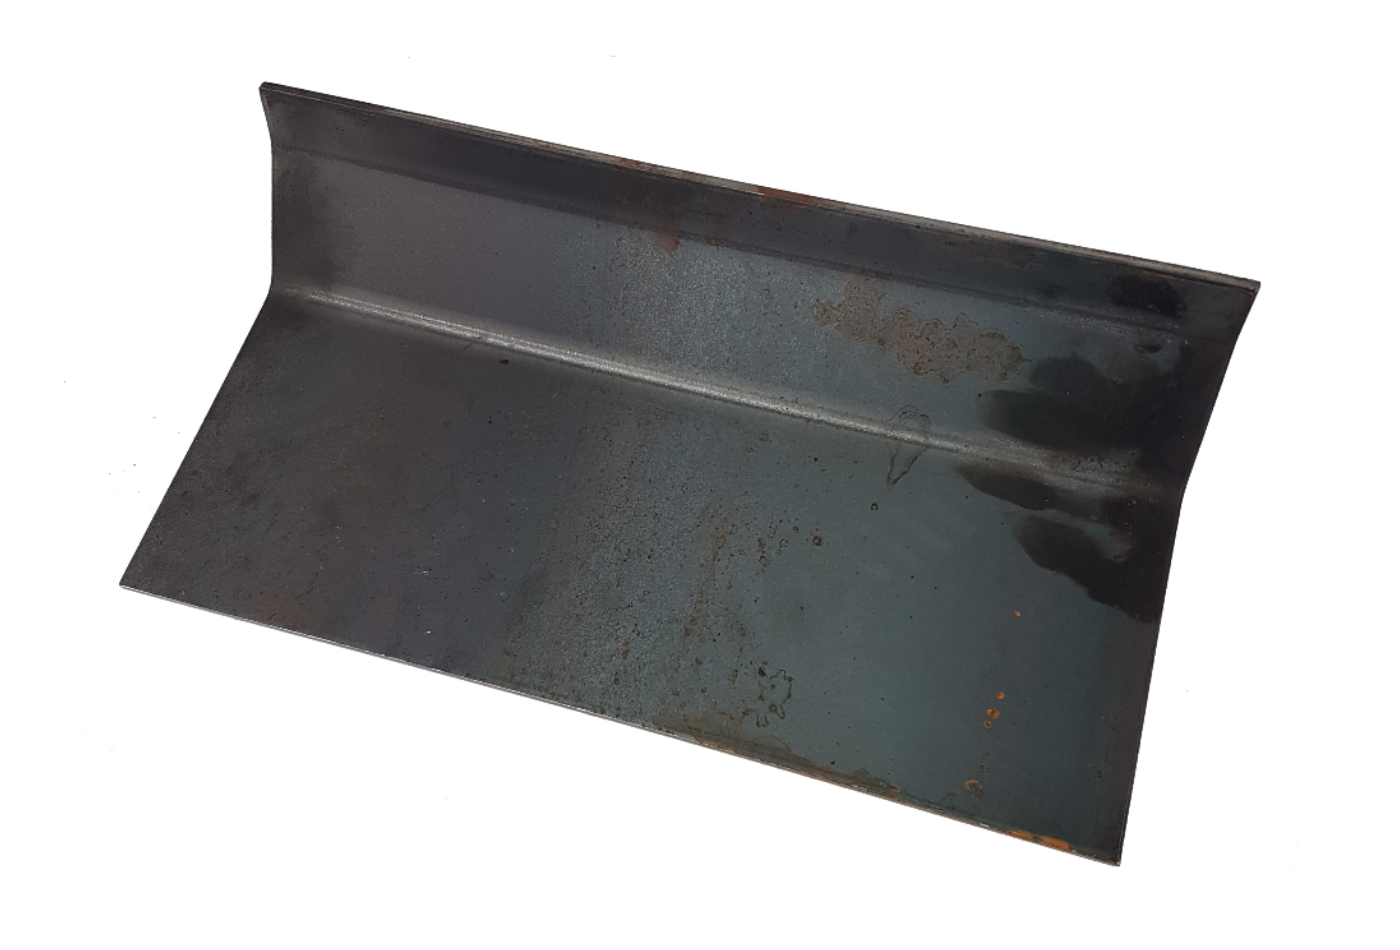 A replacement Baffle suitable for Stovax View 5 Midline Woodburning MK3 stoves.